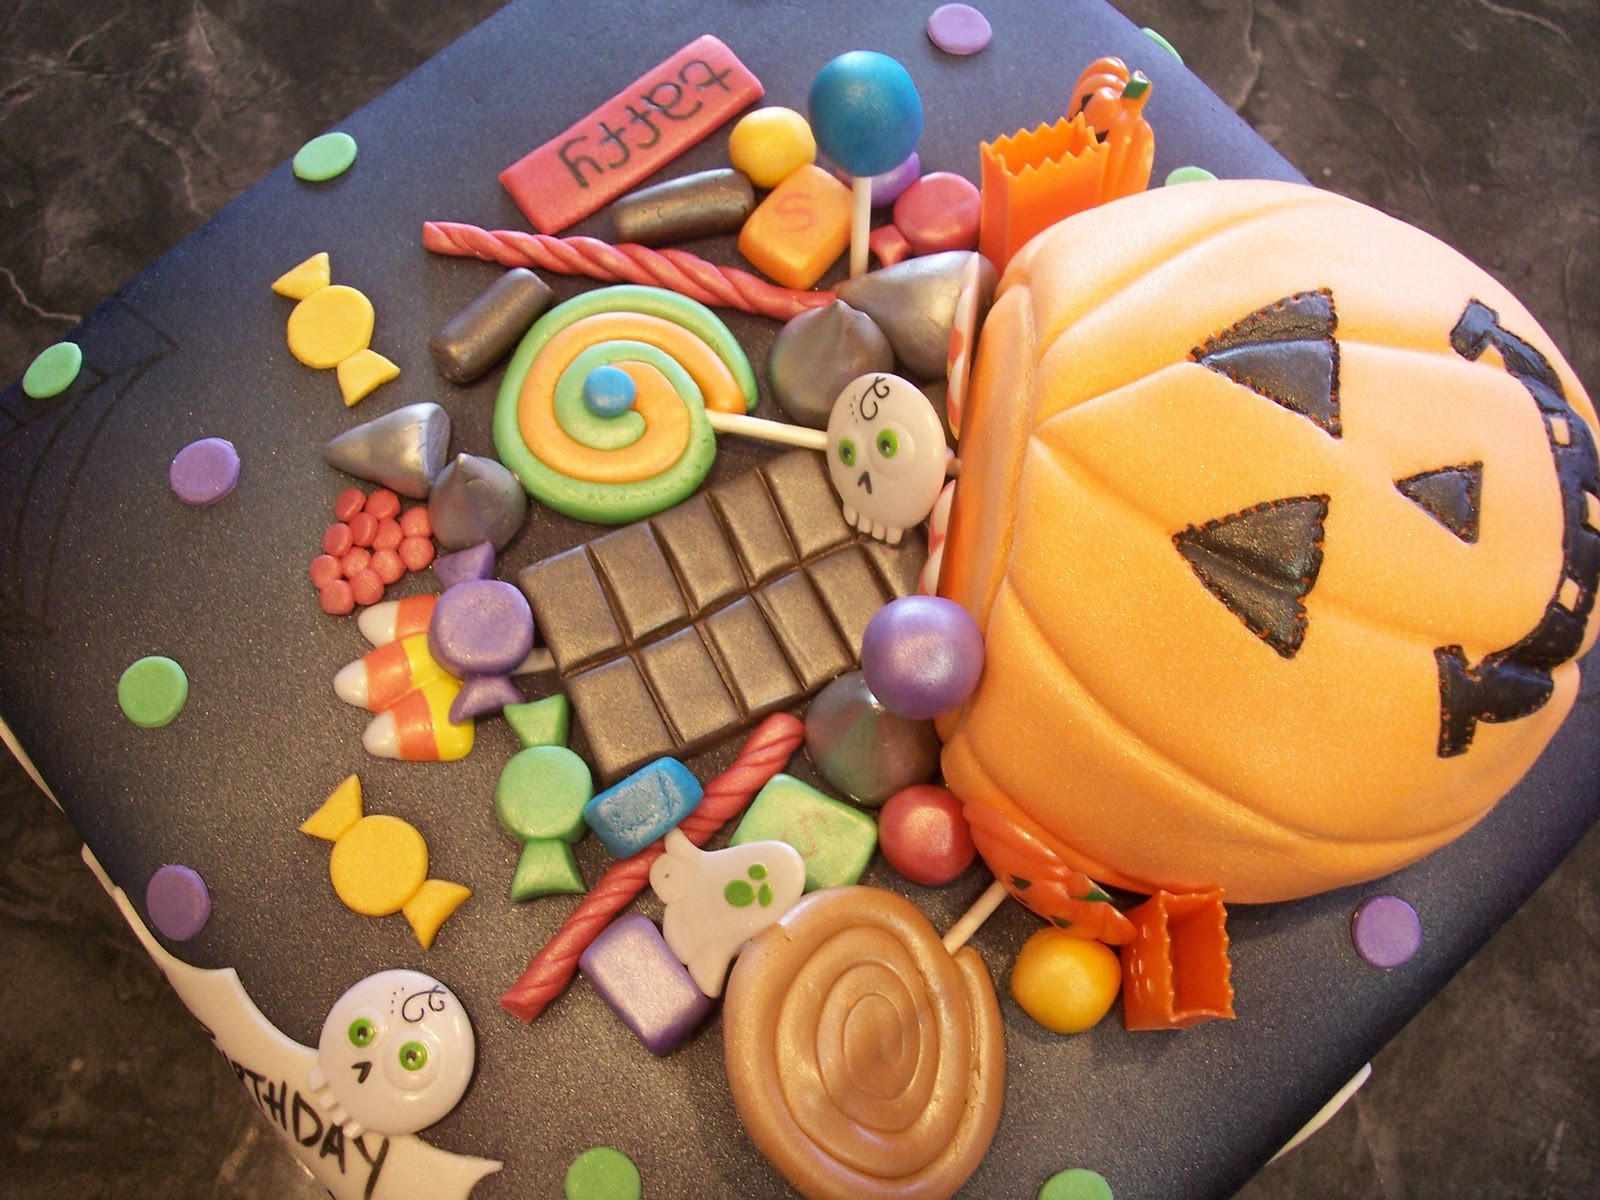 Halloween Candy Cakes  MyMoniCakes Halloween Basket with Fondant Candy Cake